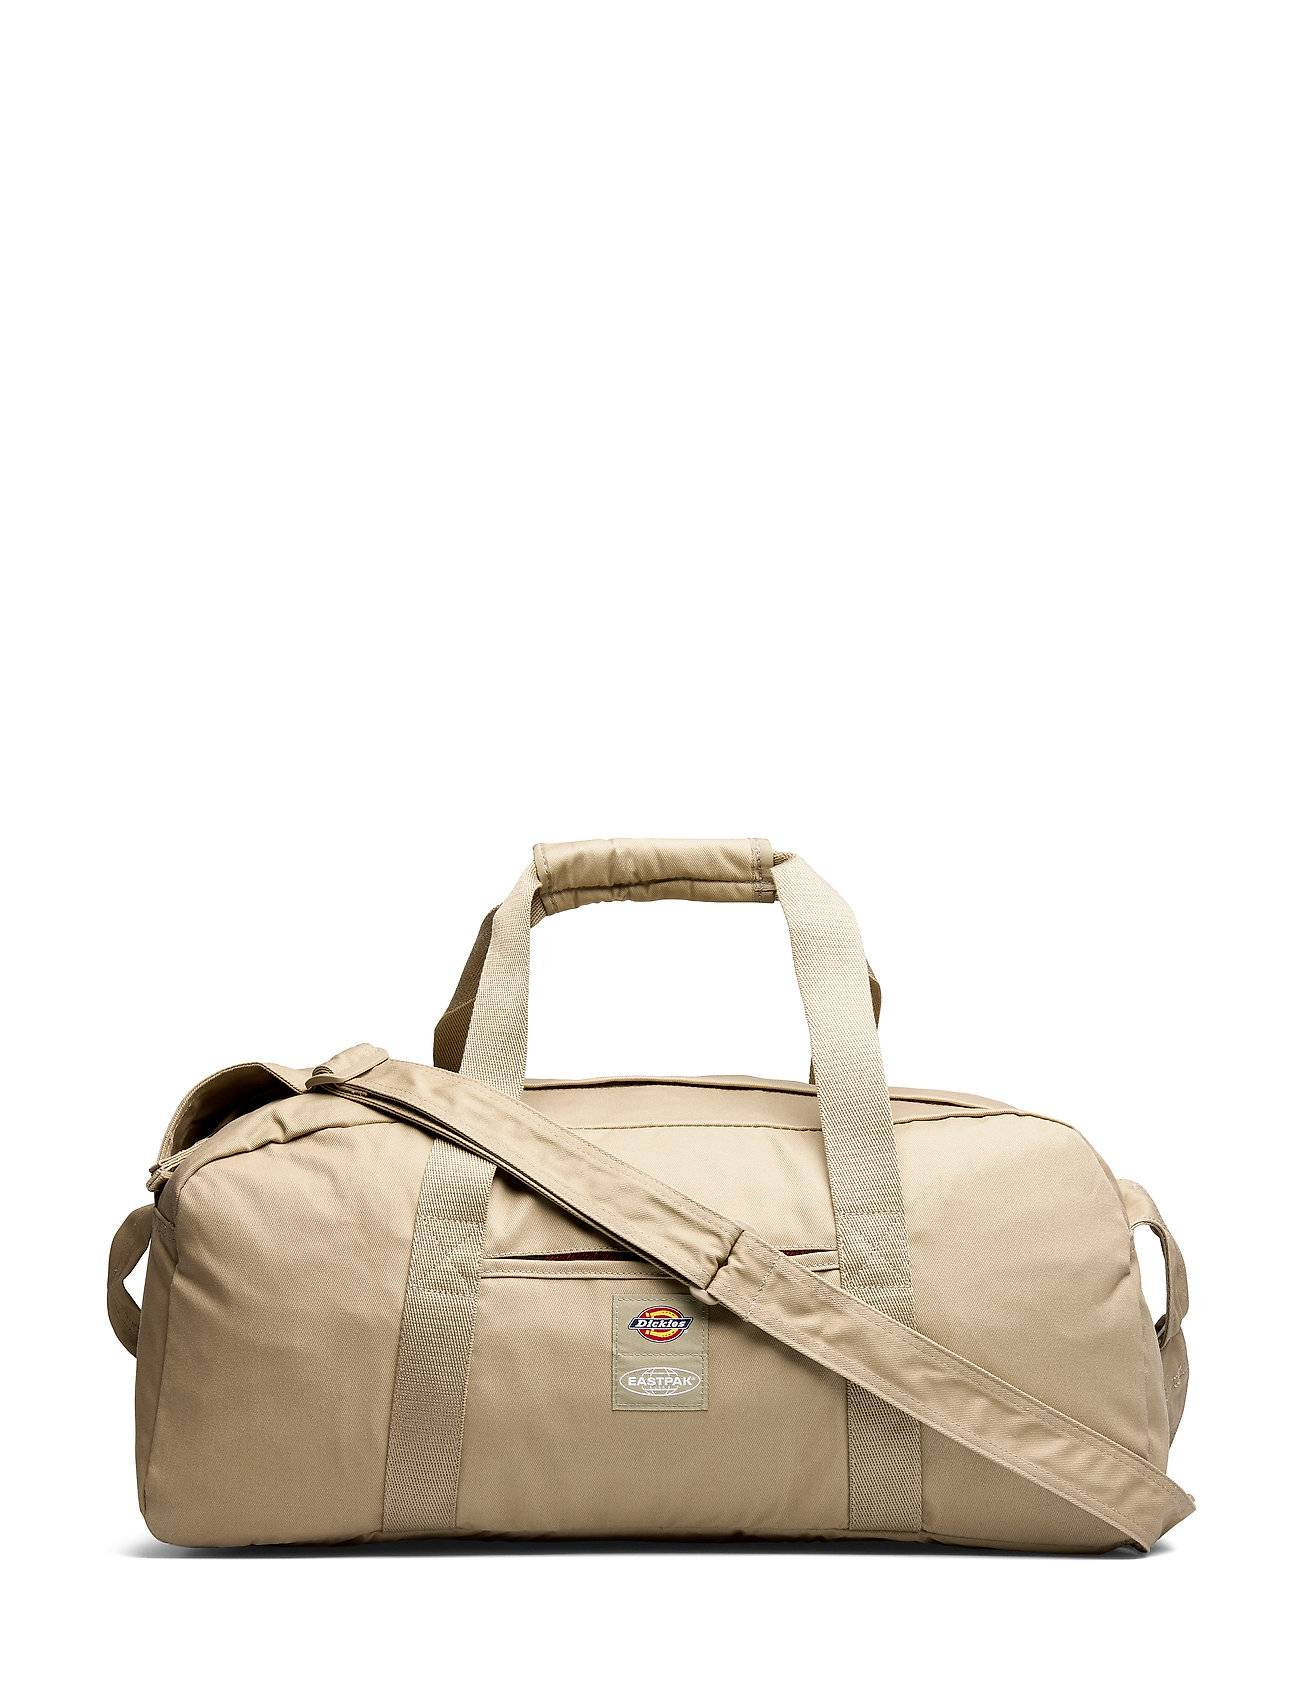 Image of Eastpak Stand + Bags Weekend & Gym Bags Beige Eastpak